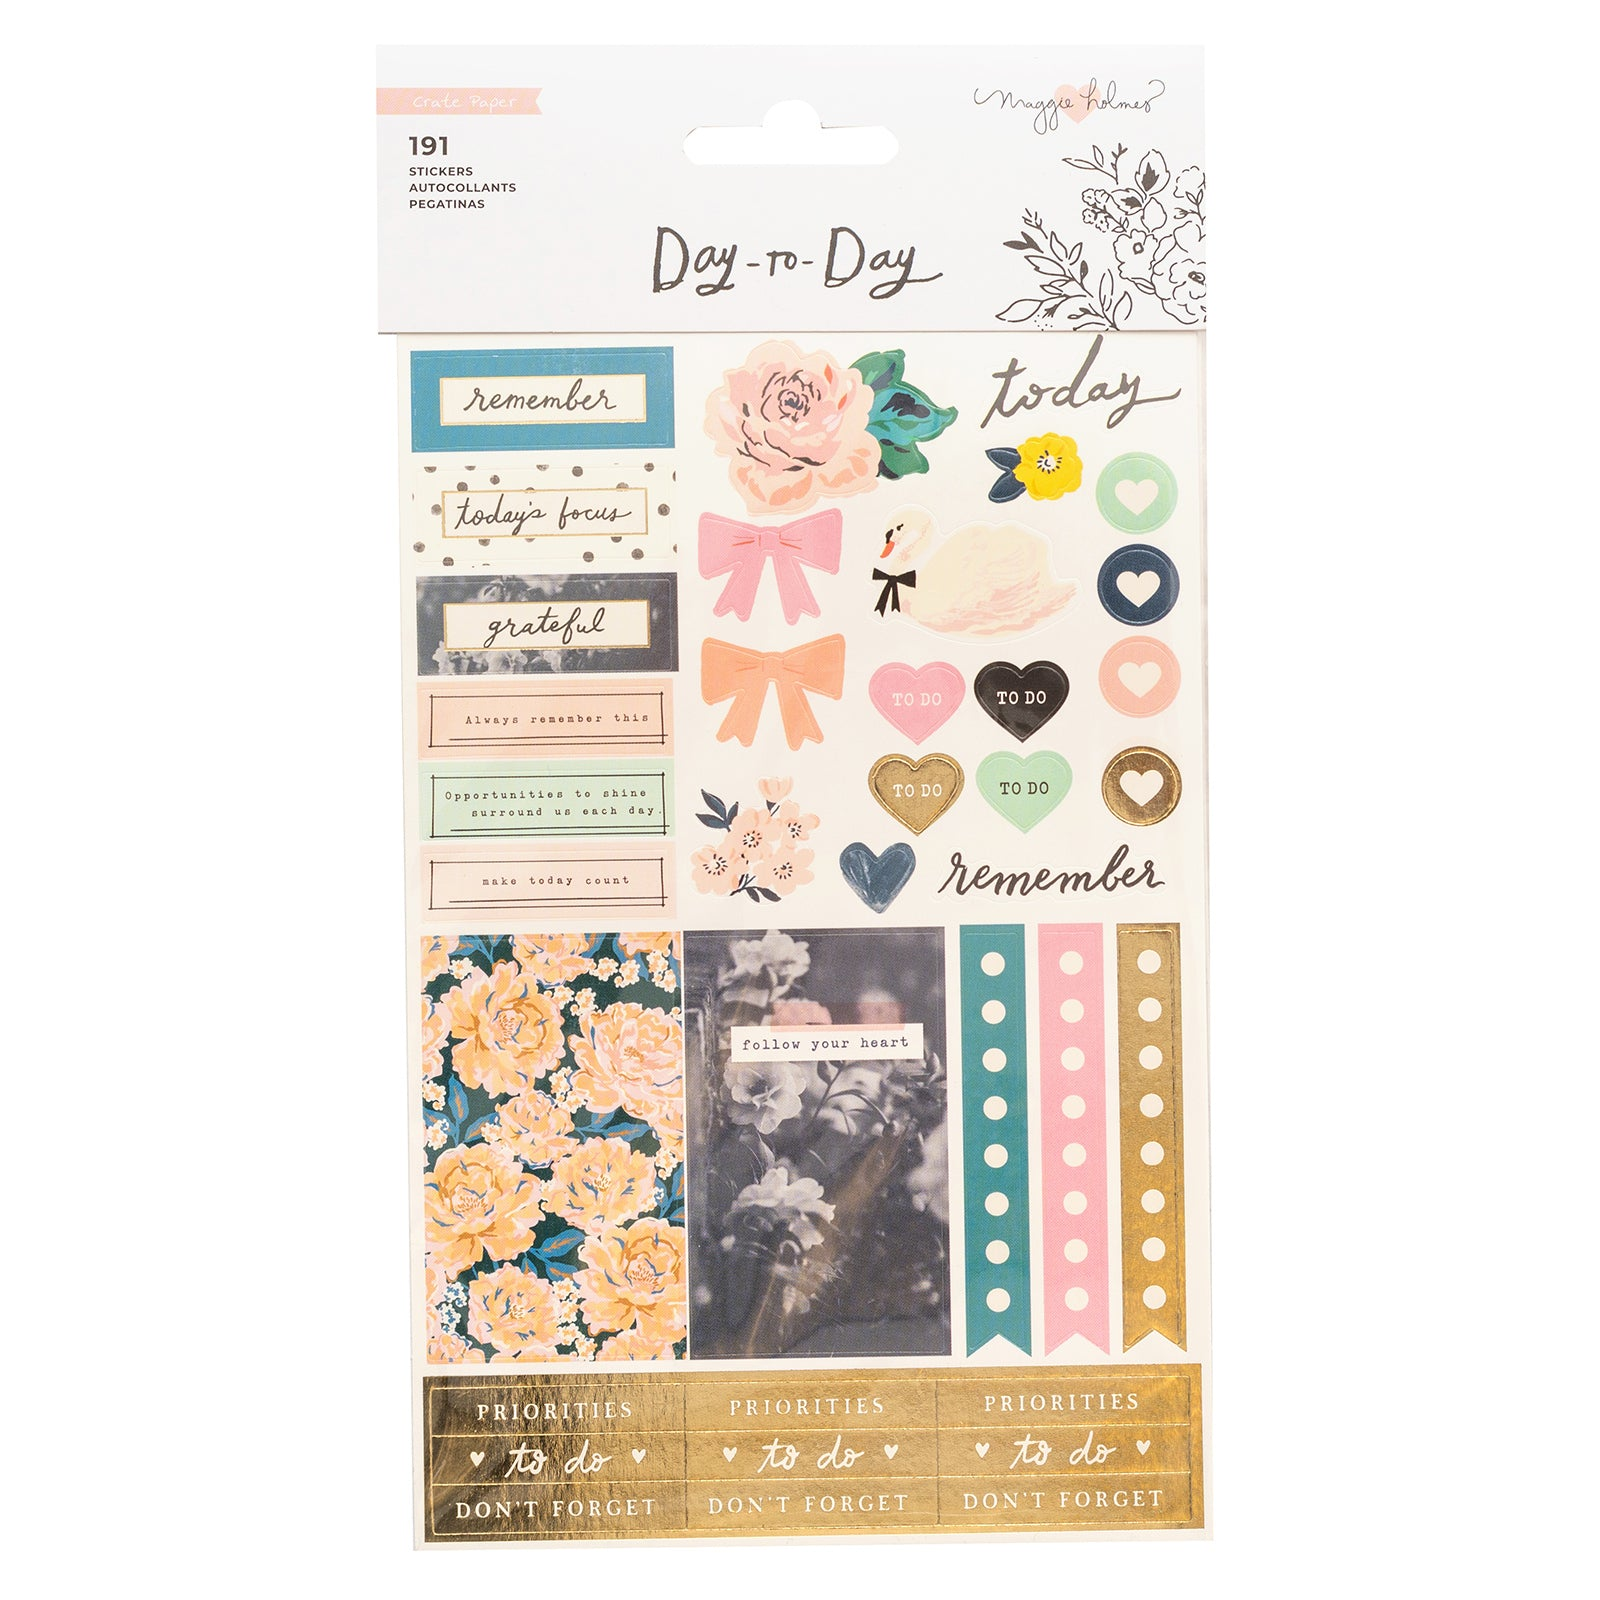 Day-To-Day Planner Sticker Book Icon / Estampas para Agendas